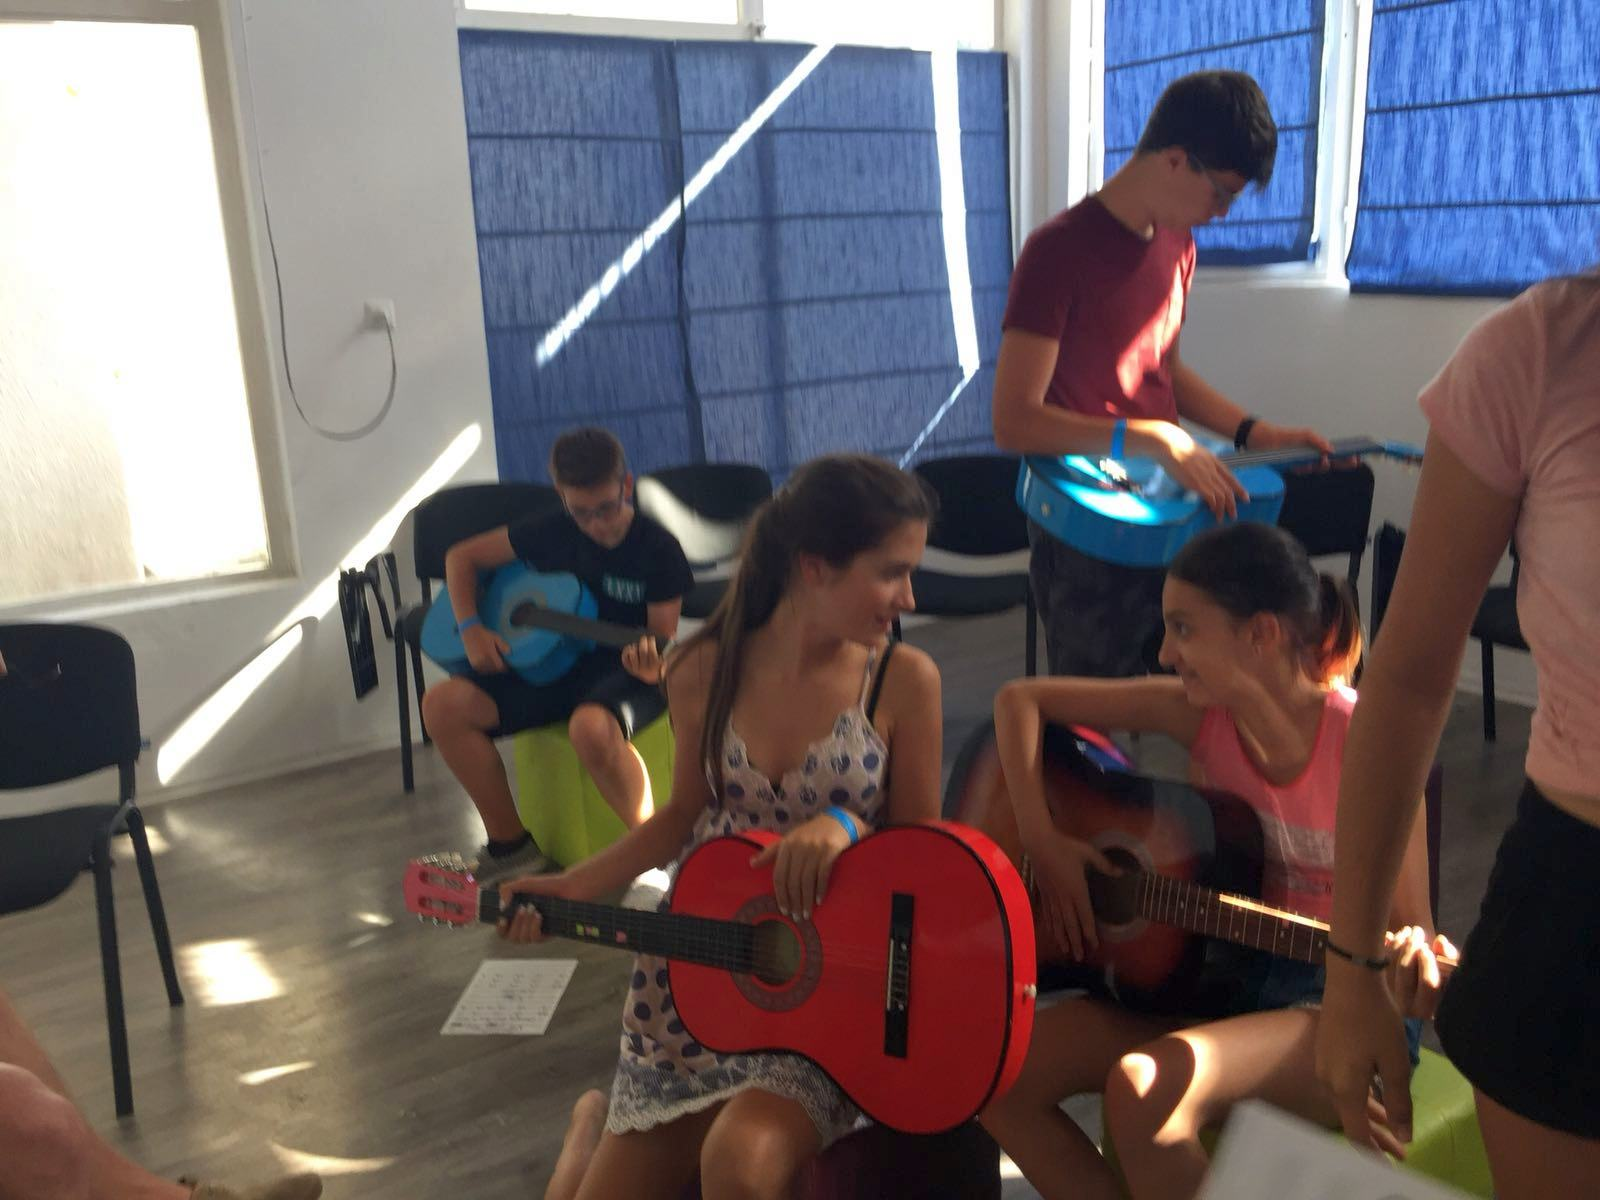 language camps for kids at Bulgarian seaside Z camp, Day 28 - musical workshop - two girls and two boys with acoustic guitars